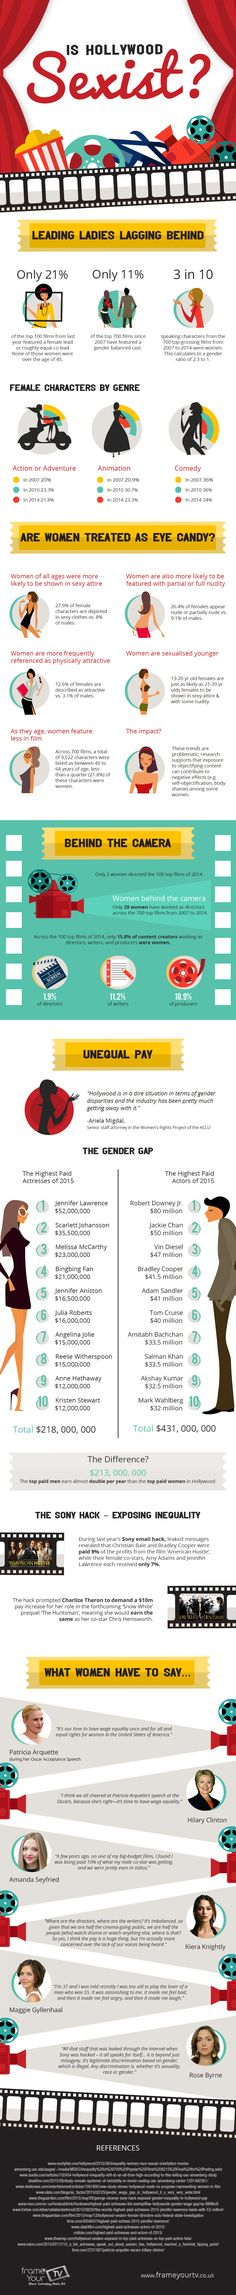 Hollywood Sexism [Infographic]